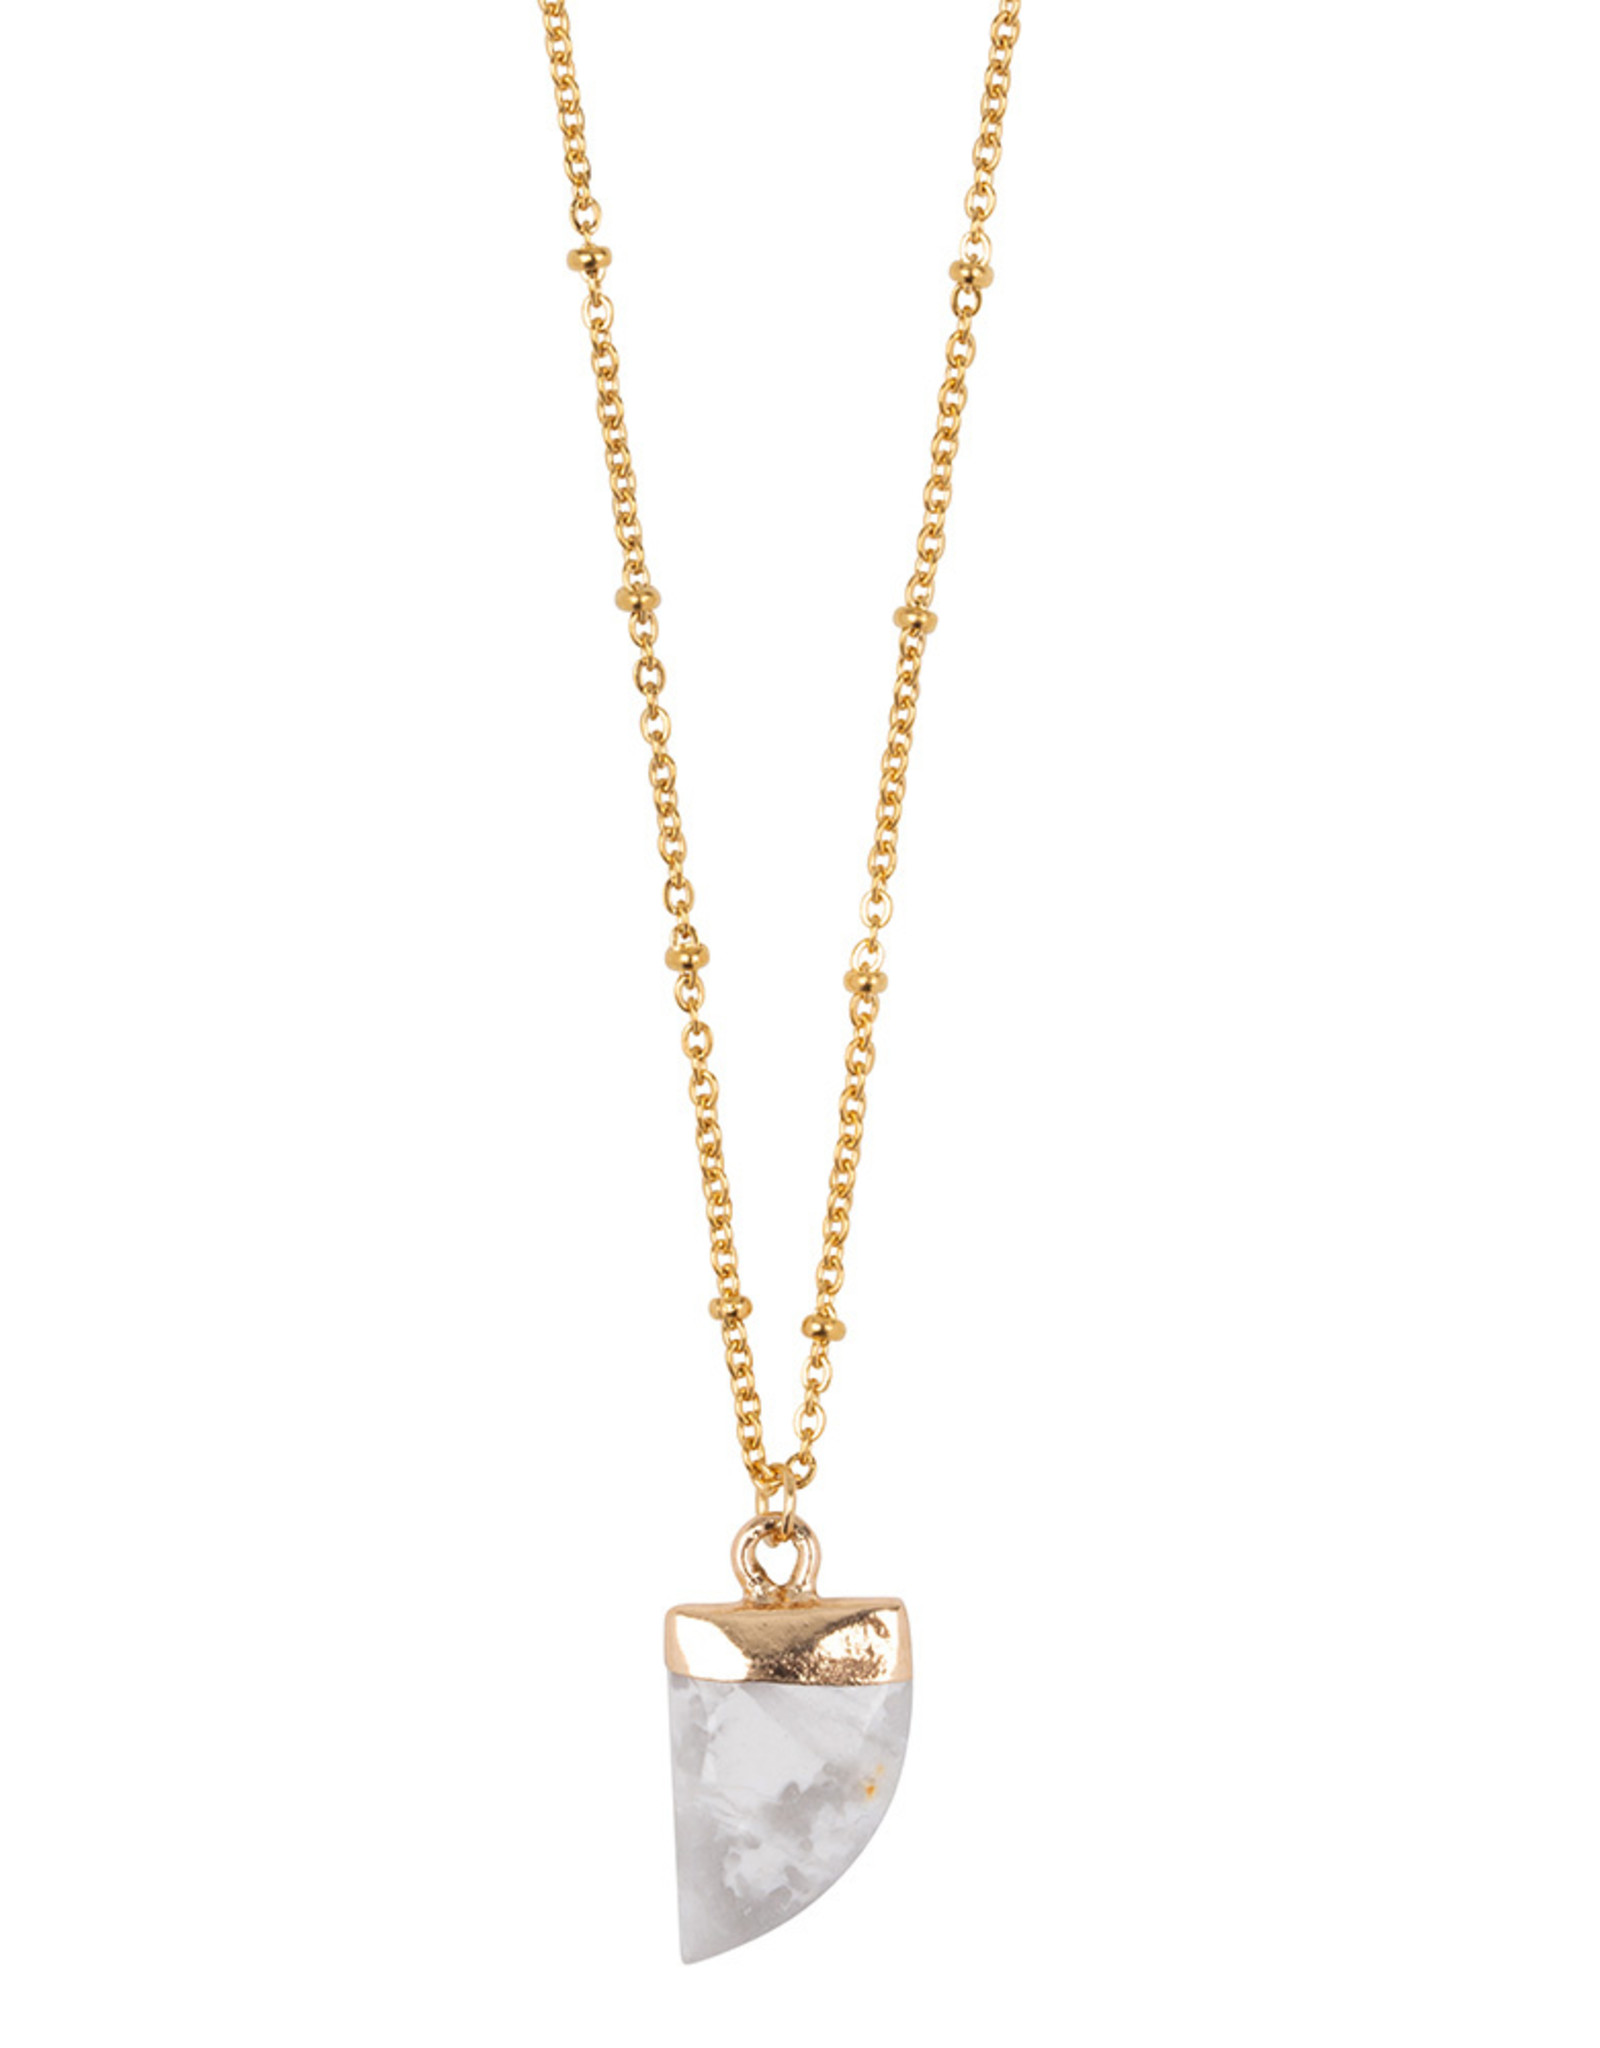 Ketting Little Tooth - Marble white